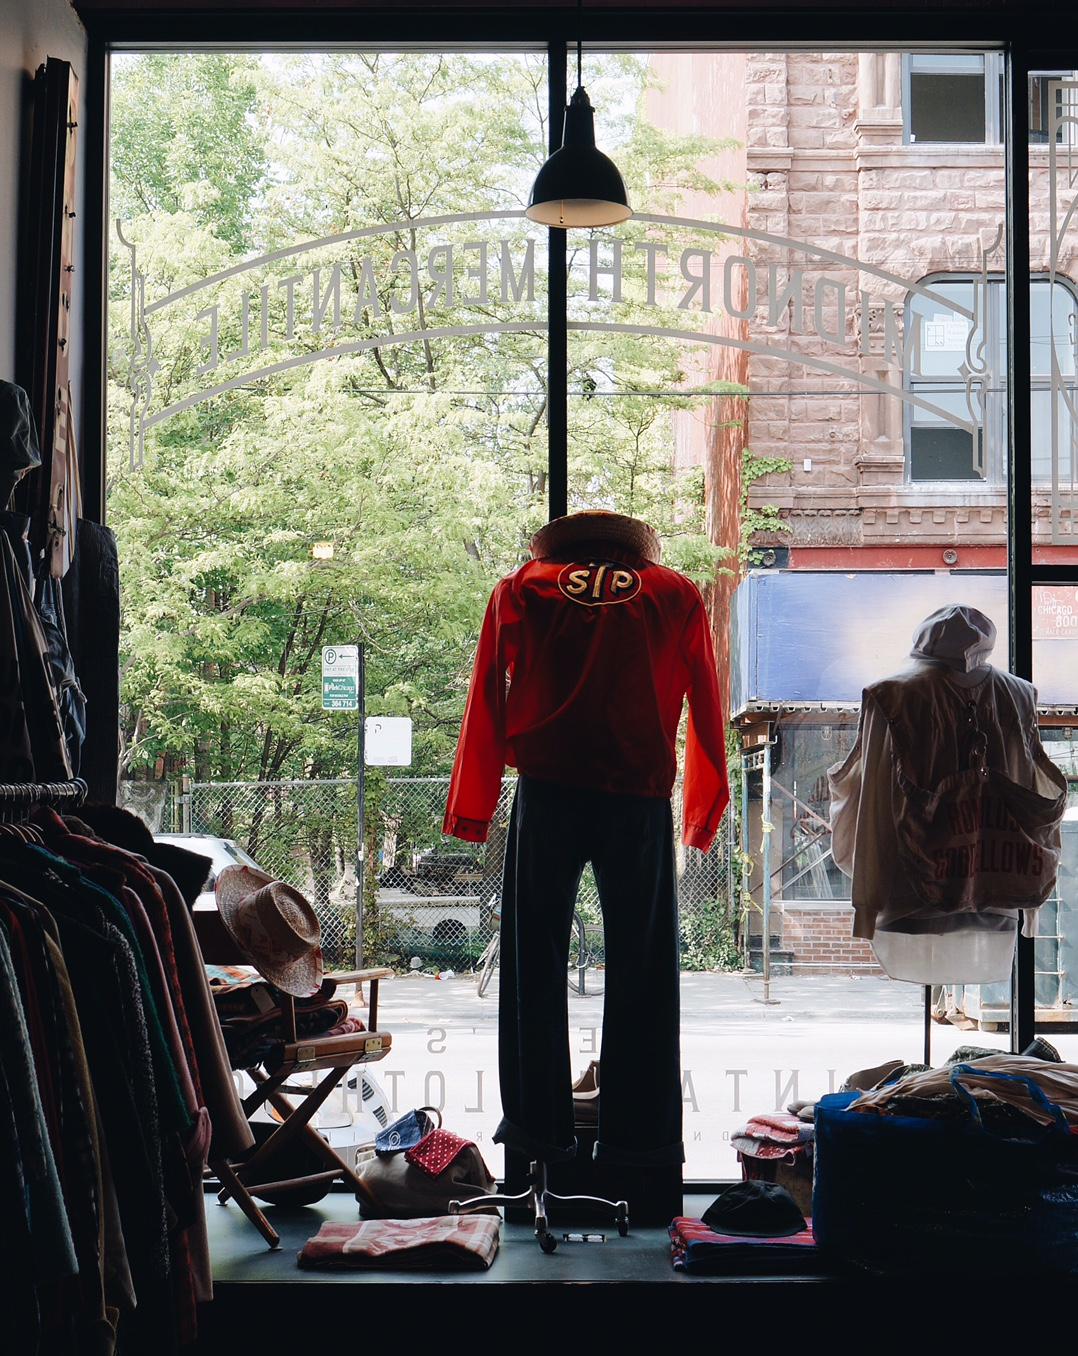 Market Supply Company. Great vintage clothing store. Super darling people.